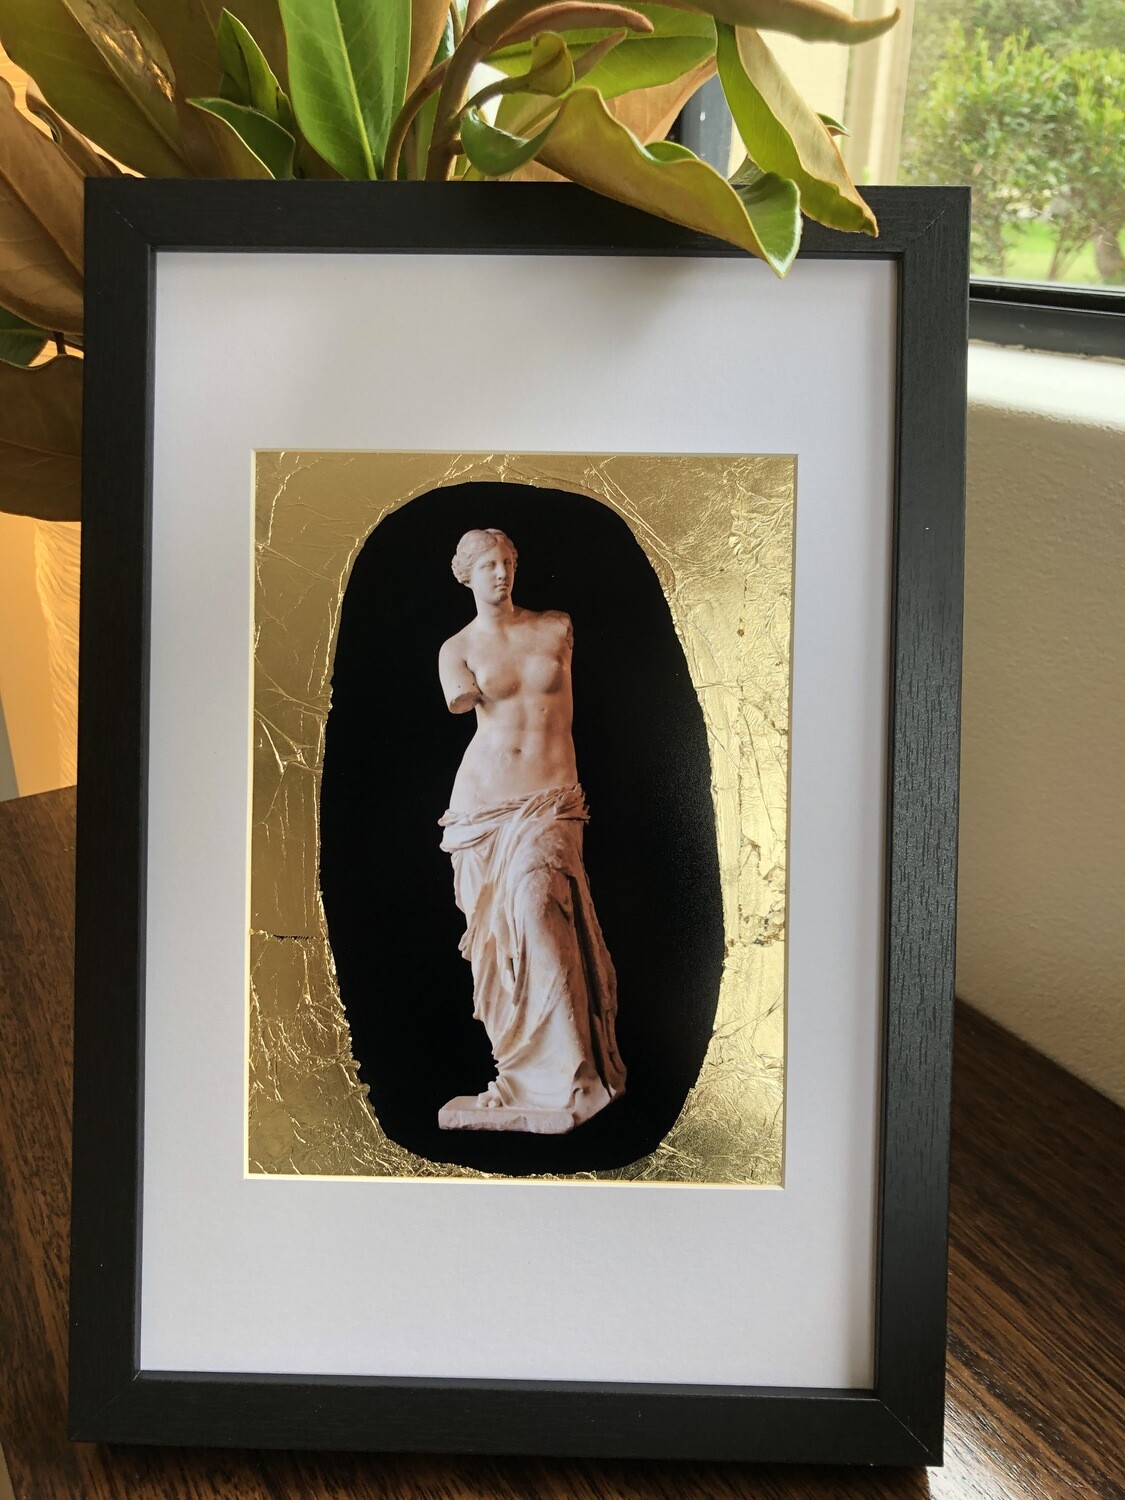 Lot 4 - Venus de Milo by Alexandros of Antioch